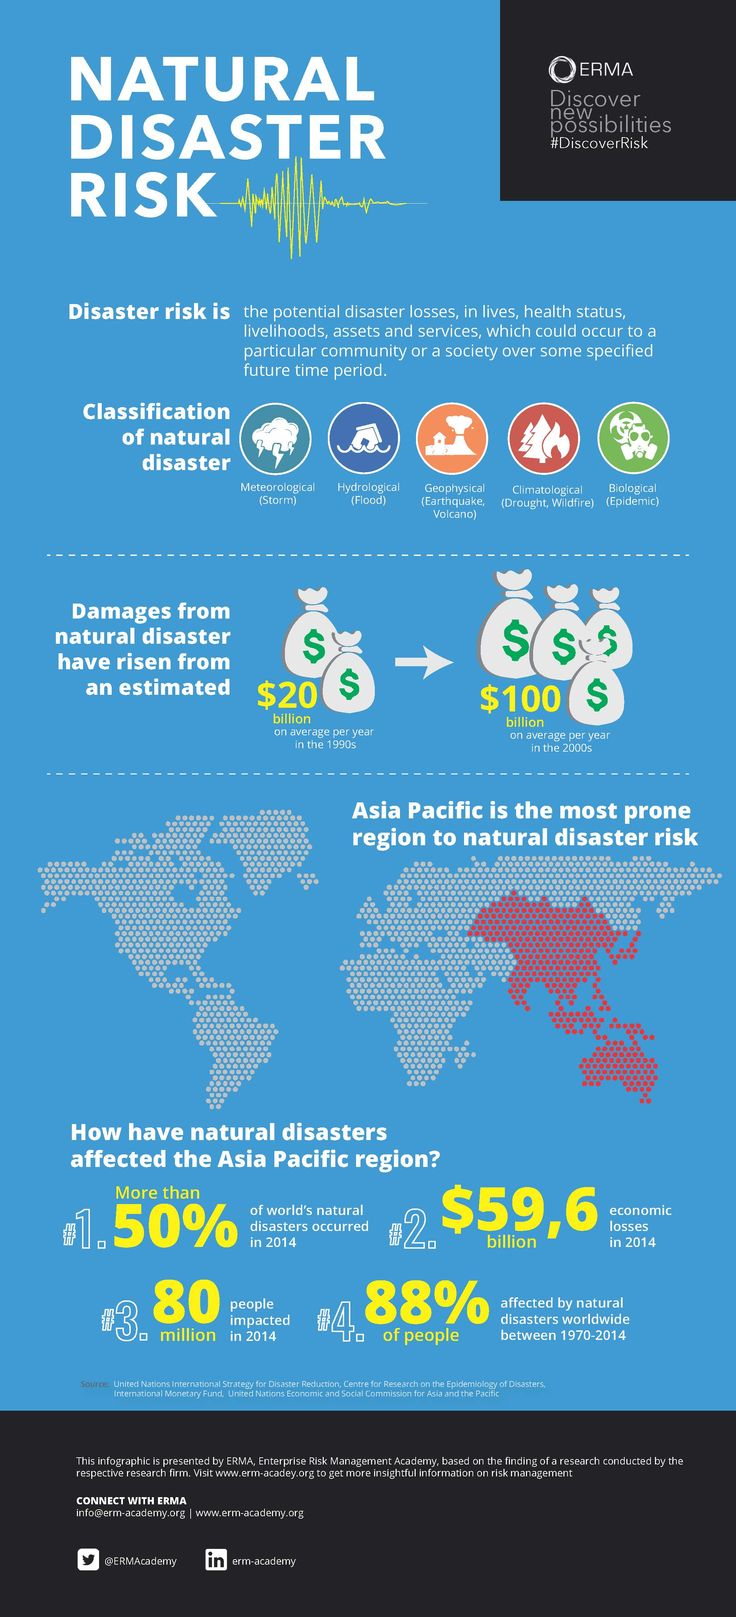 How serious is the damage caused by natural disaster risk apparently damages from natural